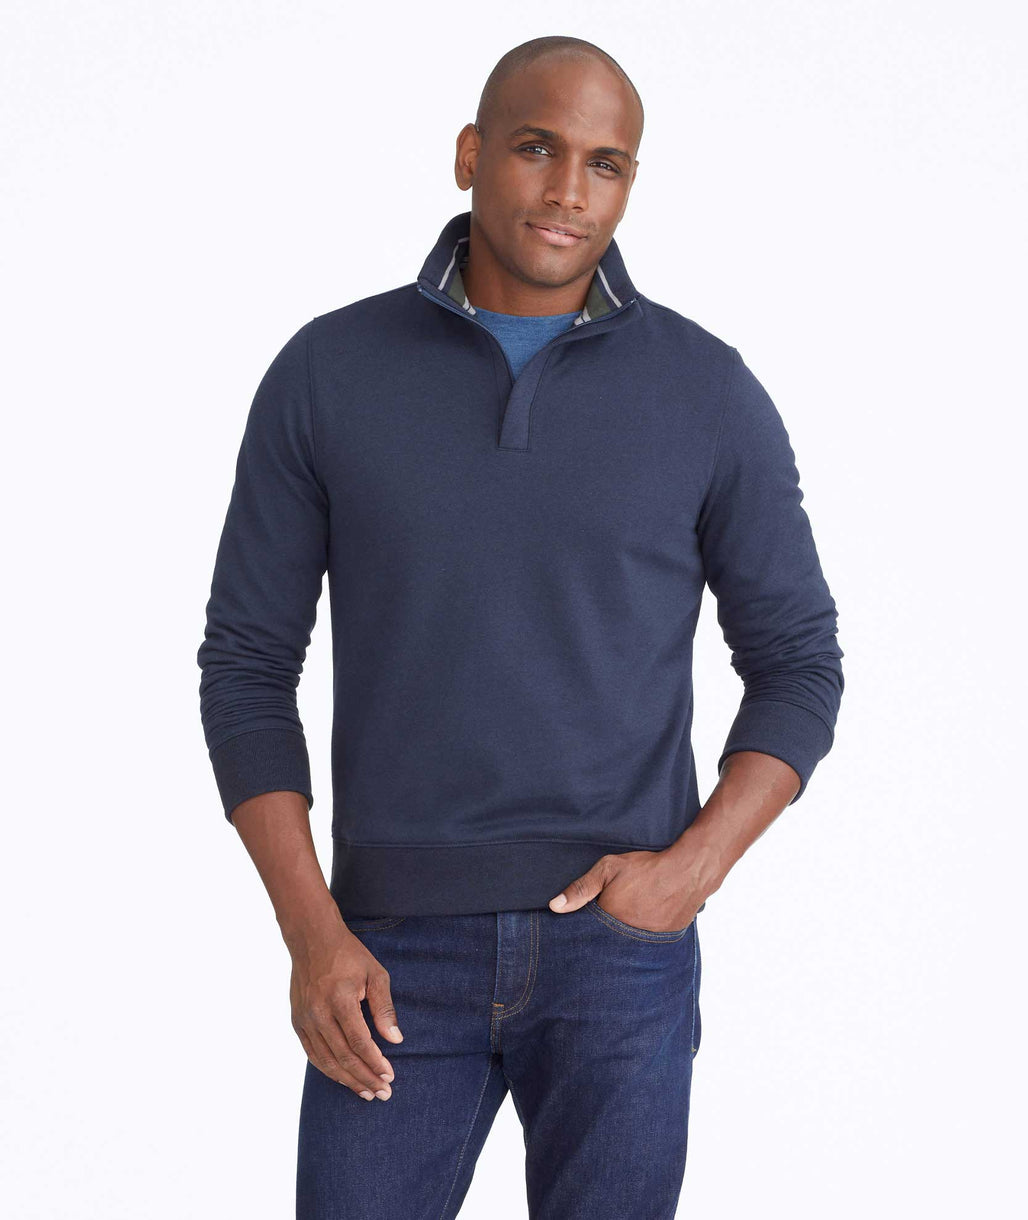 Model wearing a Navy Quarter-Zip Sweatshirt